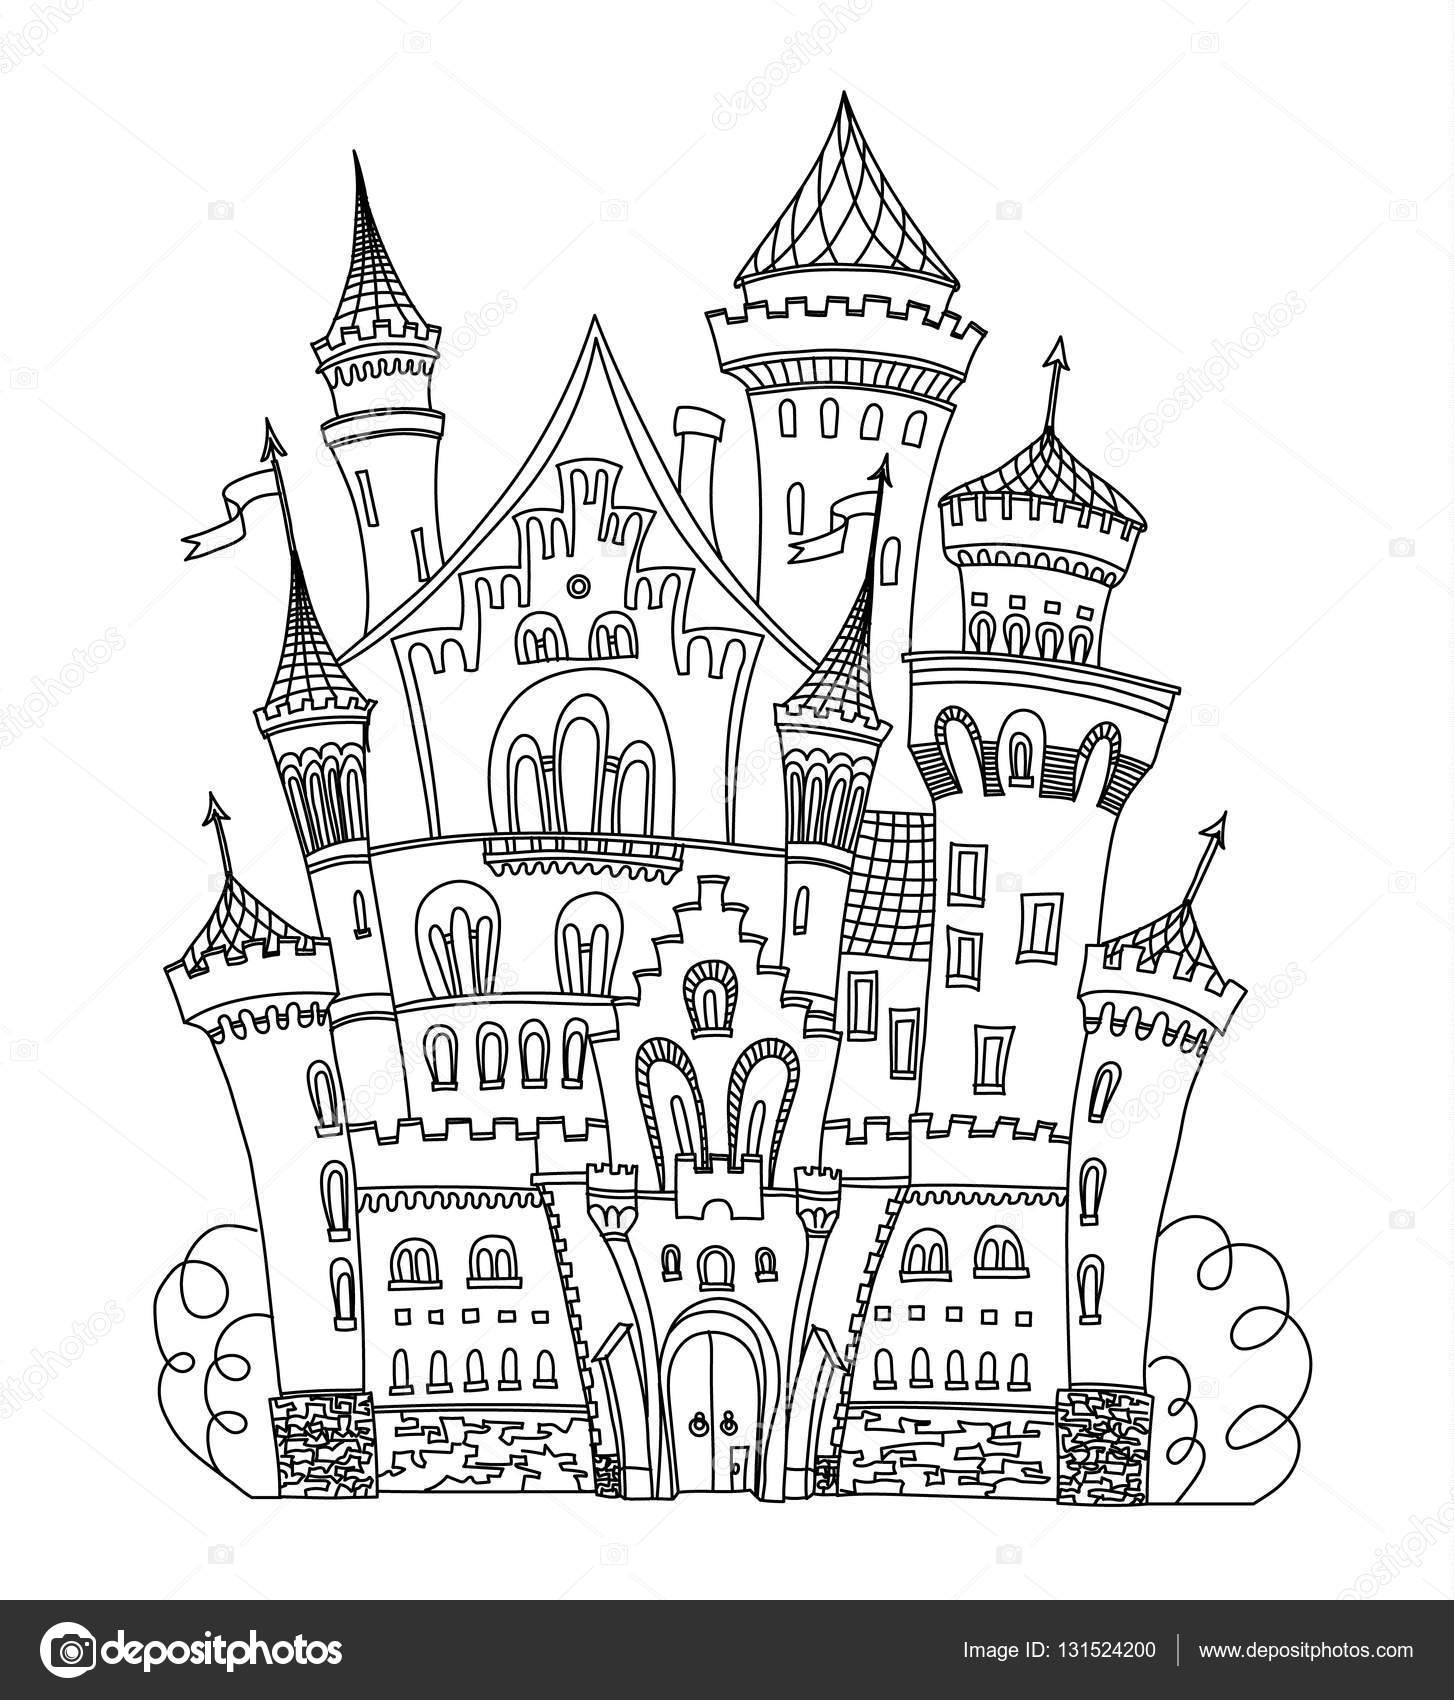 - Castle Coloring Book For Adults And Children Vector Illustration